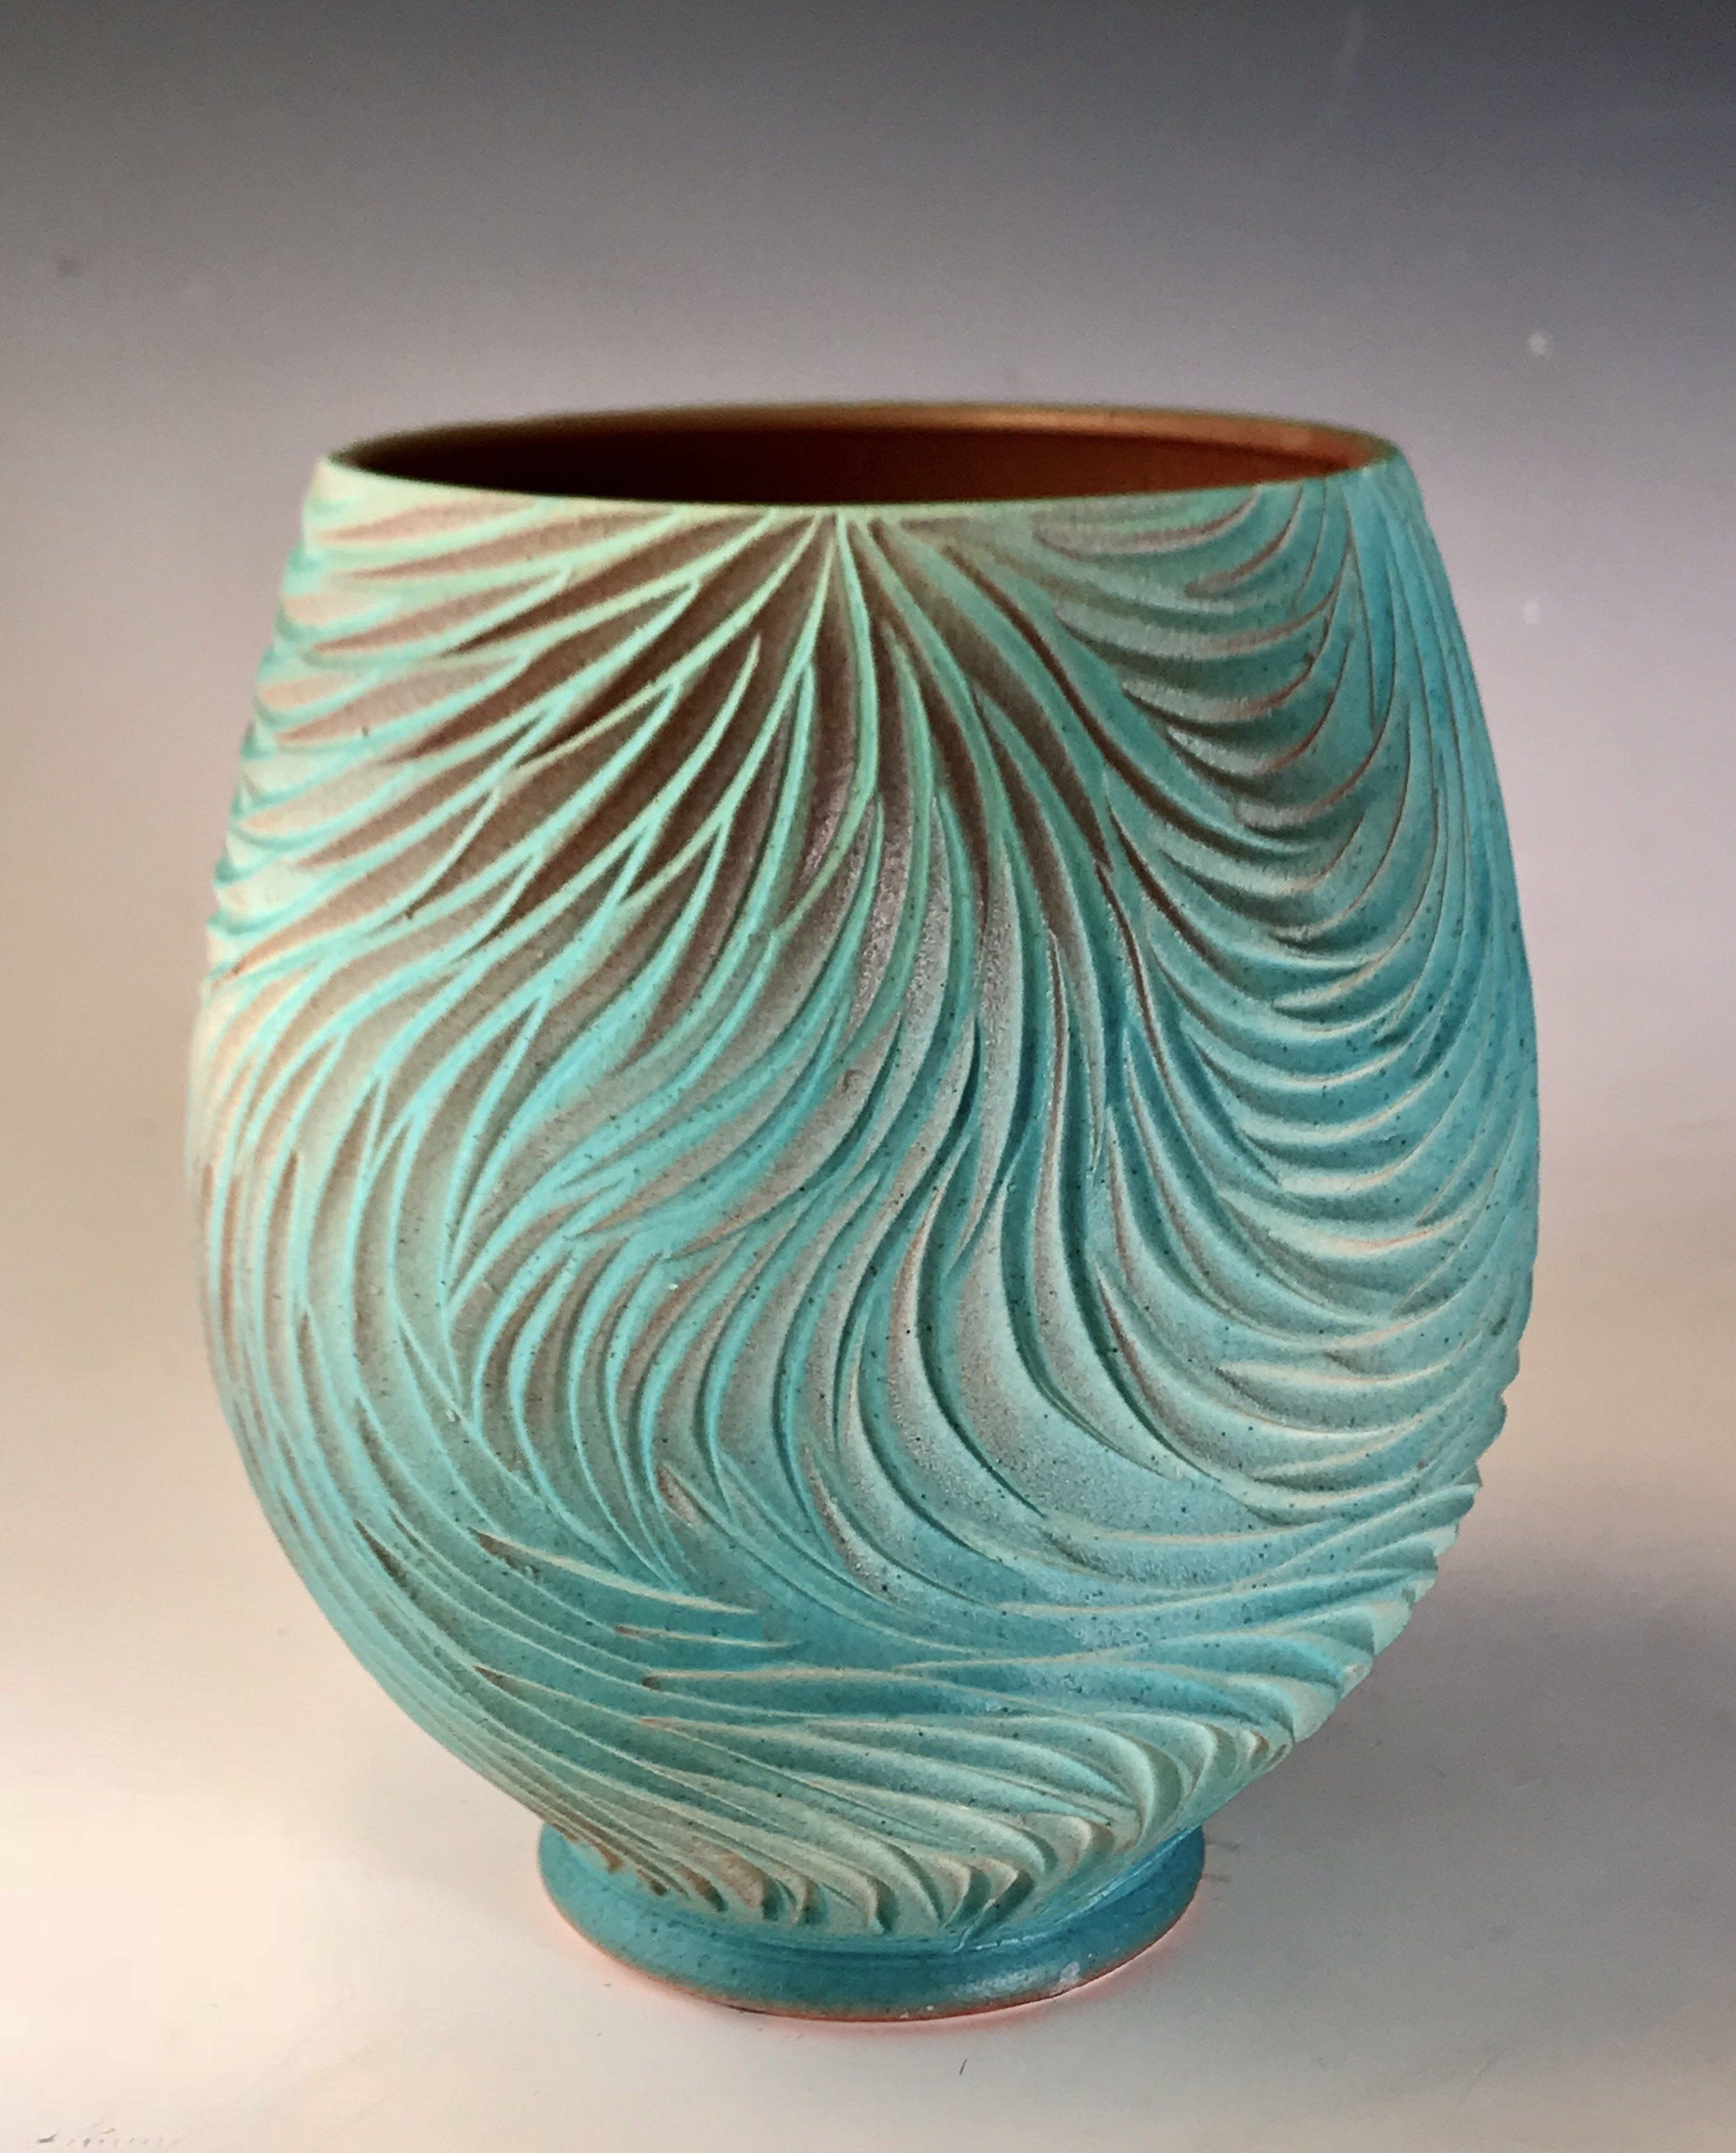 teal rain feather open vesseel pottery clay metal artifacts pinterest poterie poterie. Black Bedroom Furniture Sets. Home Design Ideas